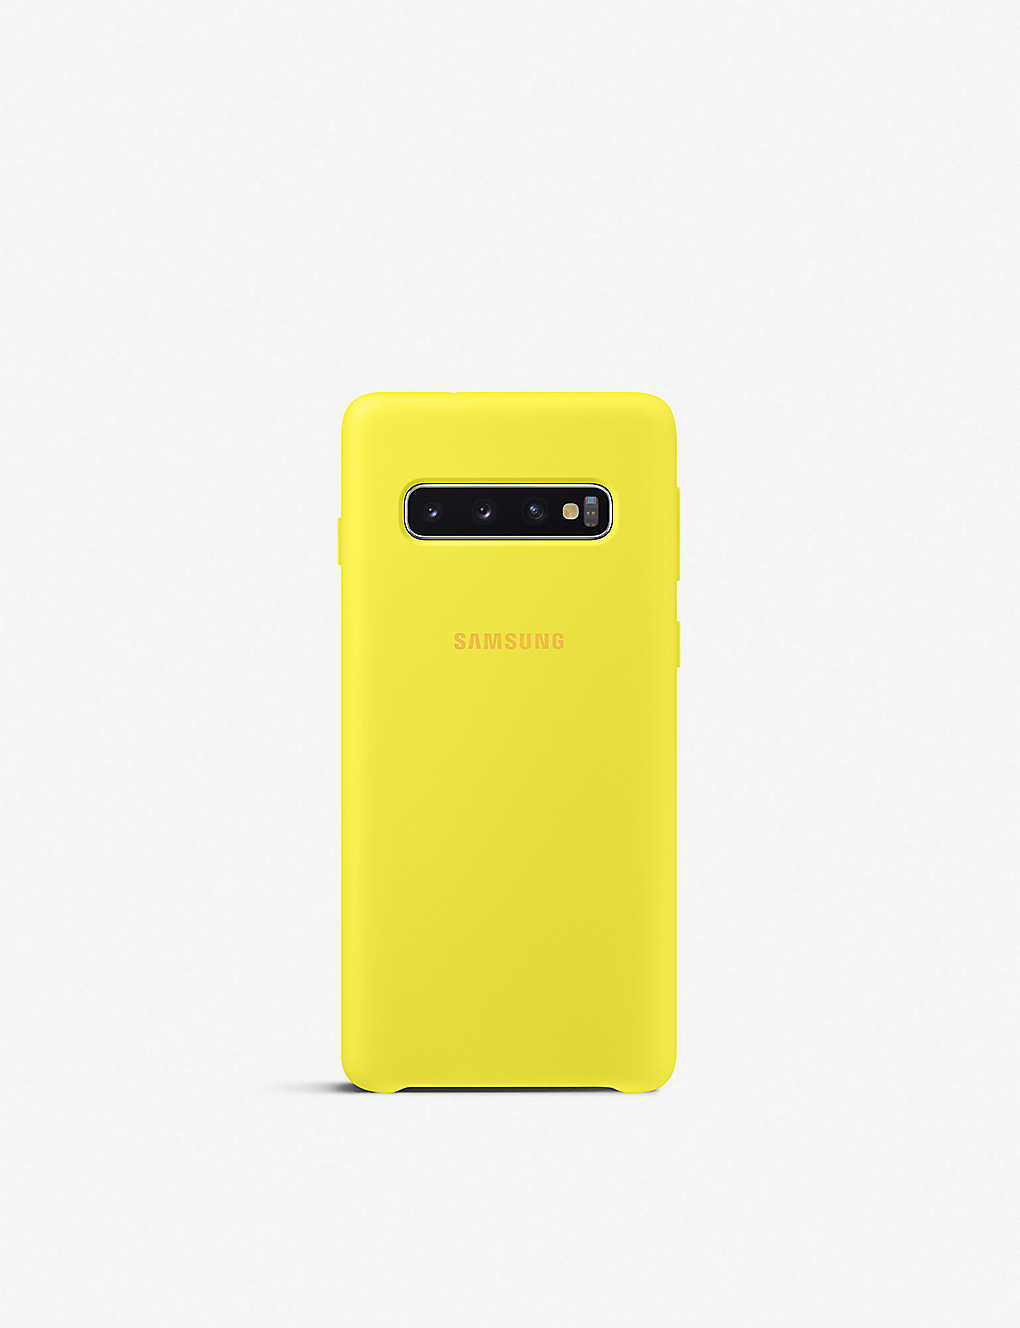 SAMSUNG: Galaxy S10/S10+ Soft Touch cover